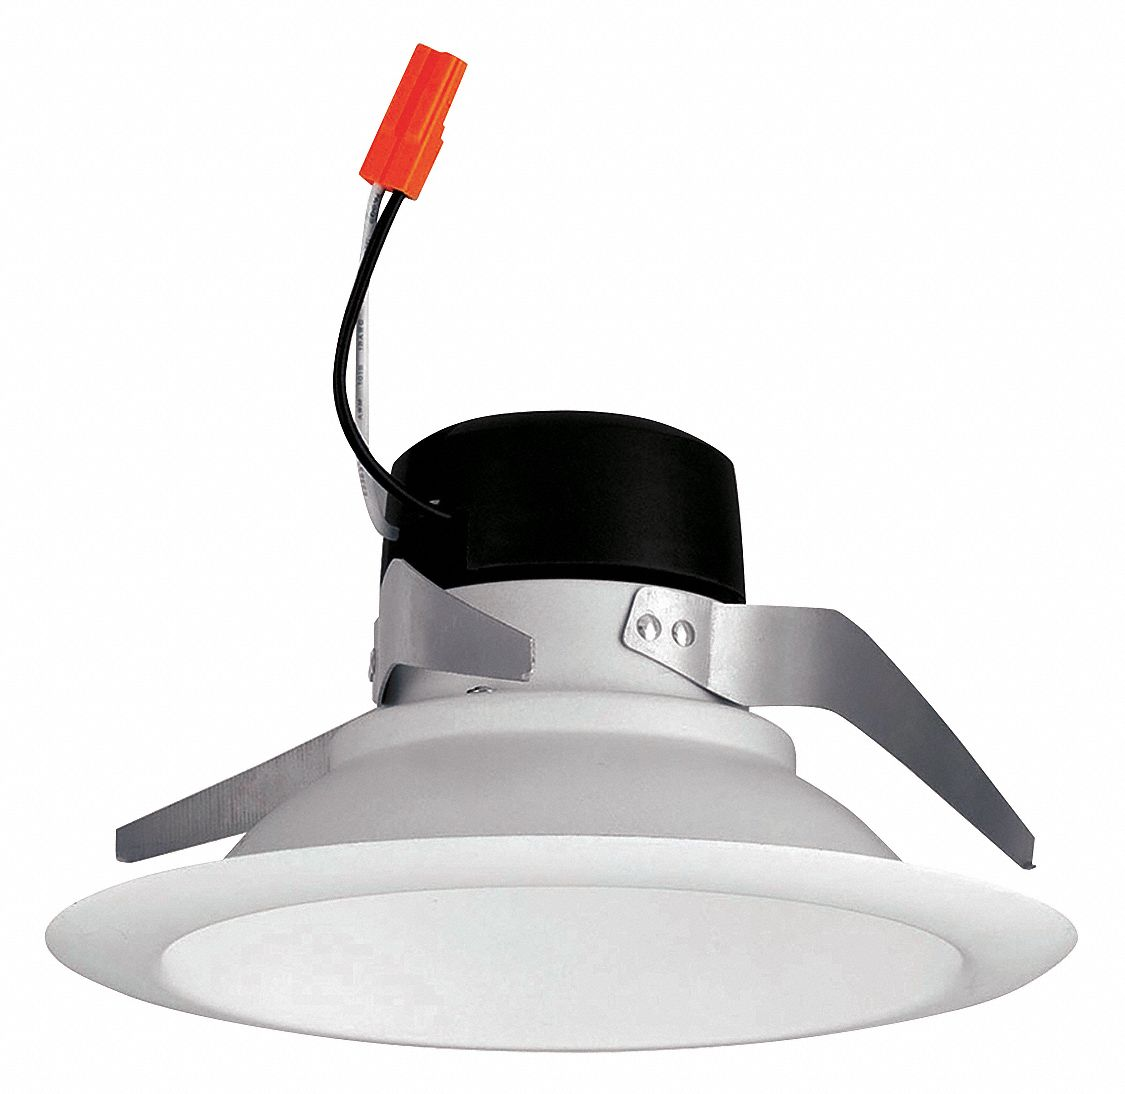 6 in Dimmable LED Downlight Retrofit Kit; Lumens: 1000, Voltage: 120, Watts: 12 W